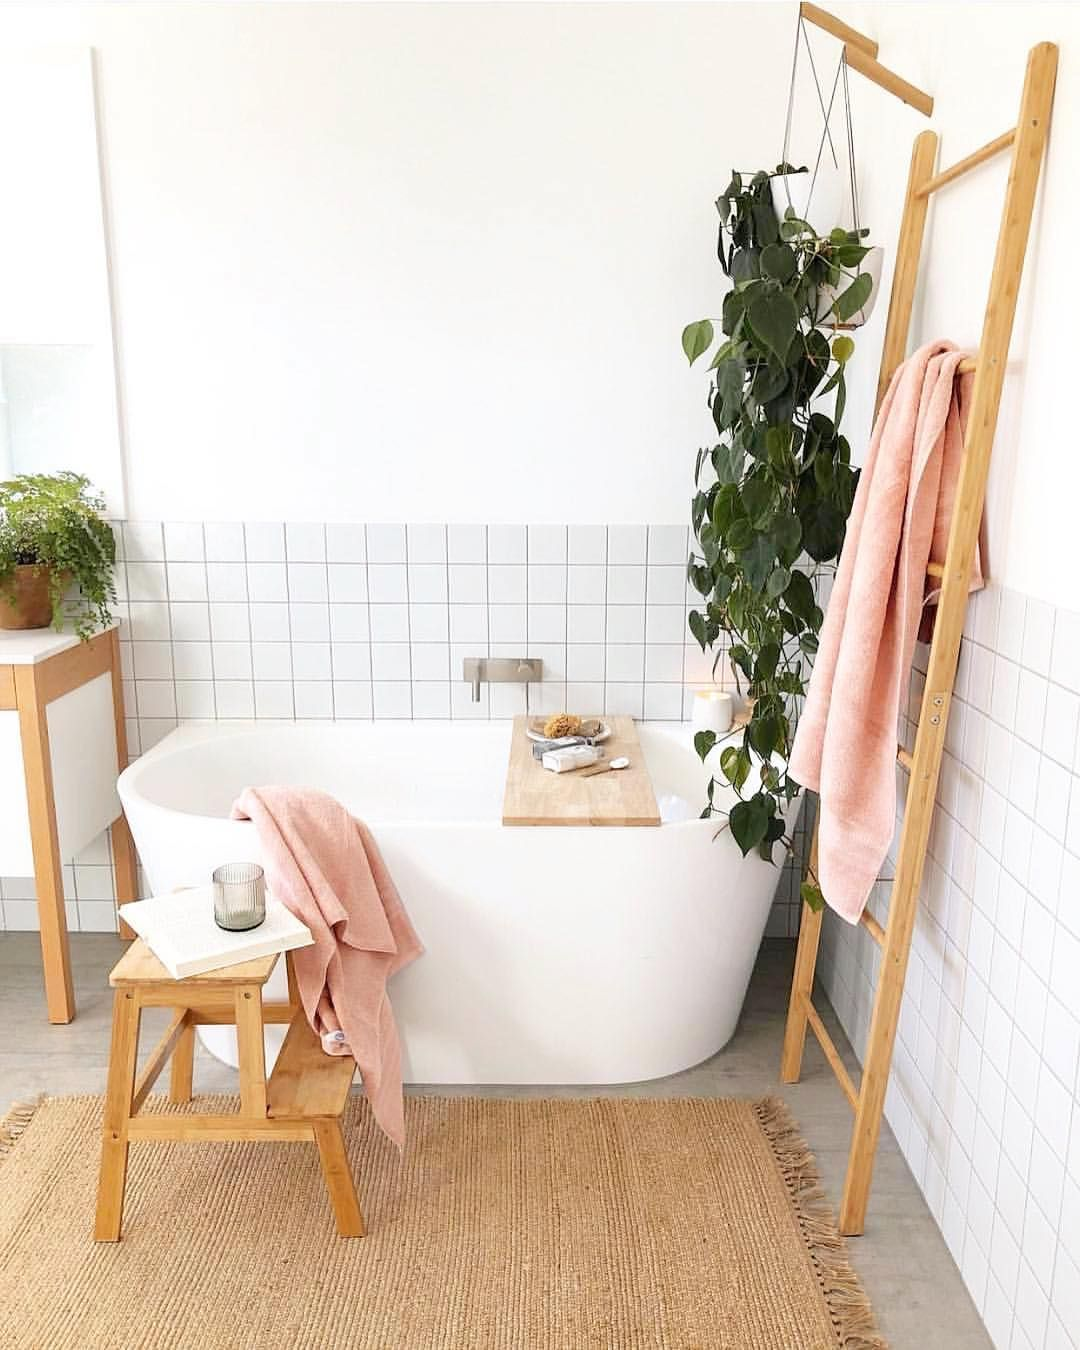 bright and light bathroom white bathtub wood ladder rack vivid vines white ceramic tile walls flat woven runner with fringed tassels wood stool